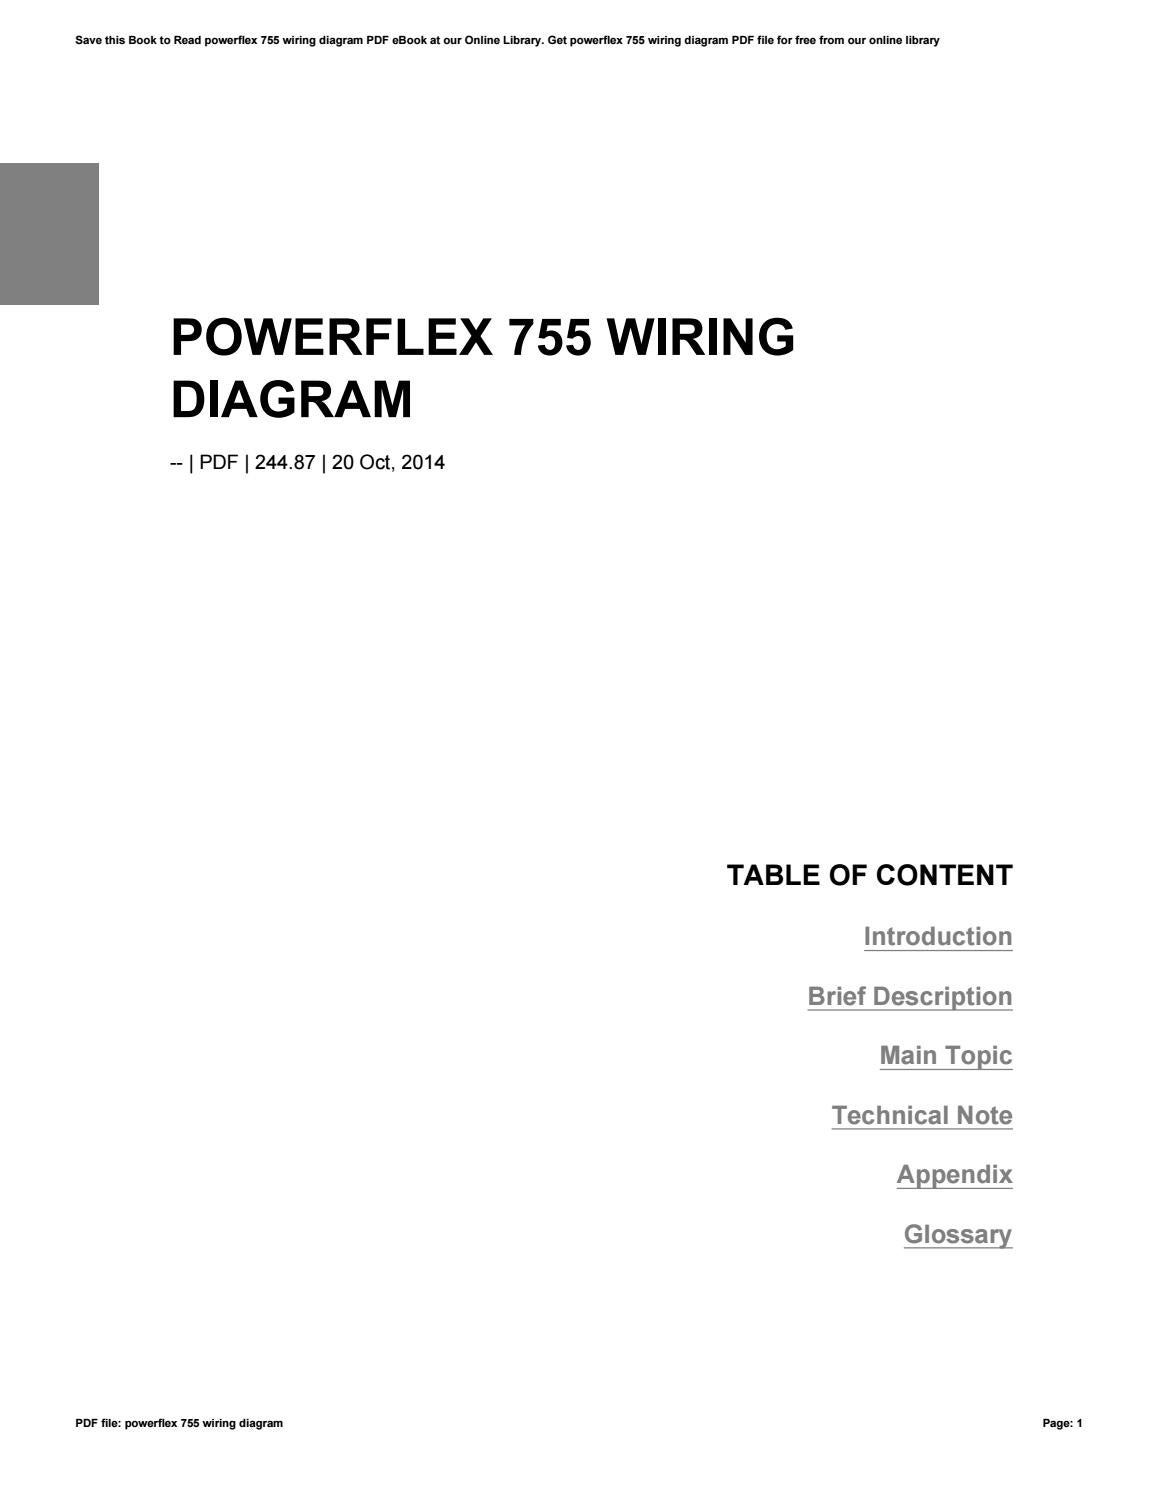 WRG-8282] Powerflex 755 Wiring Diagram